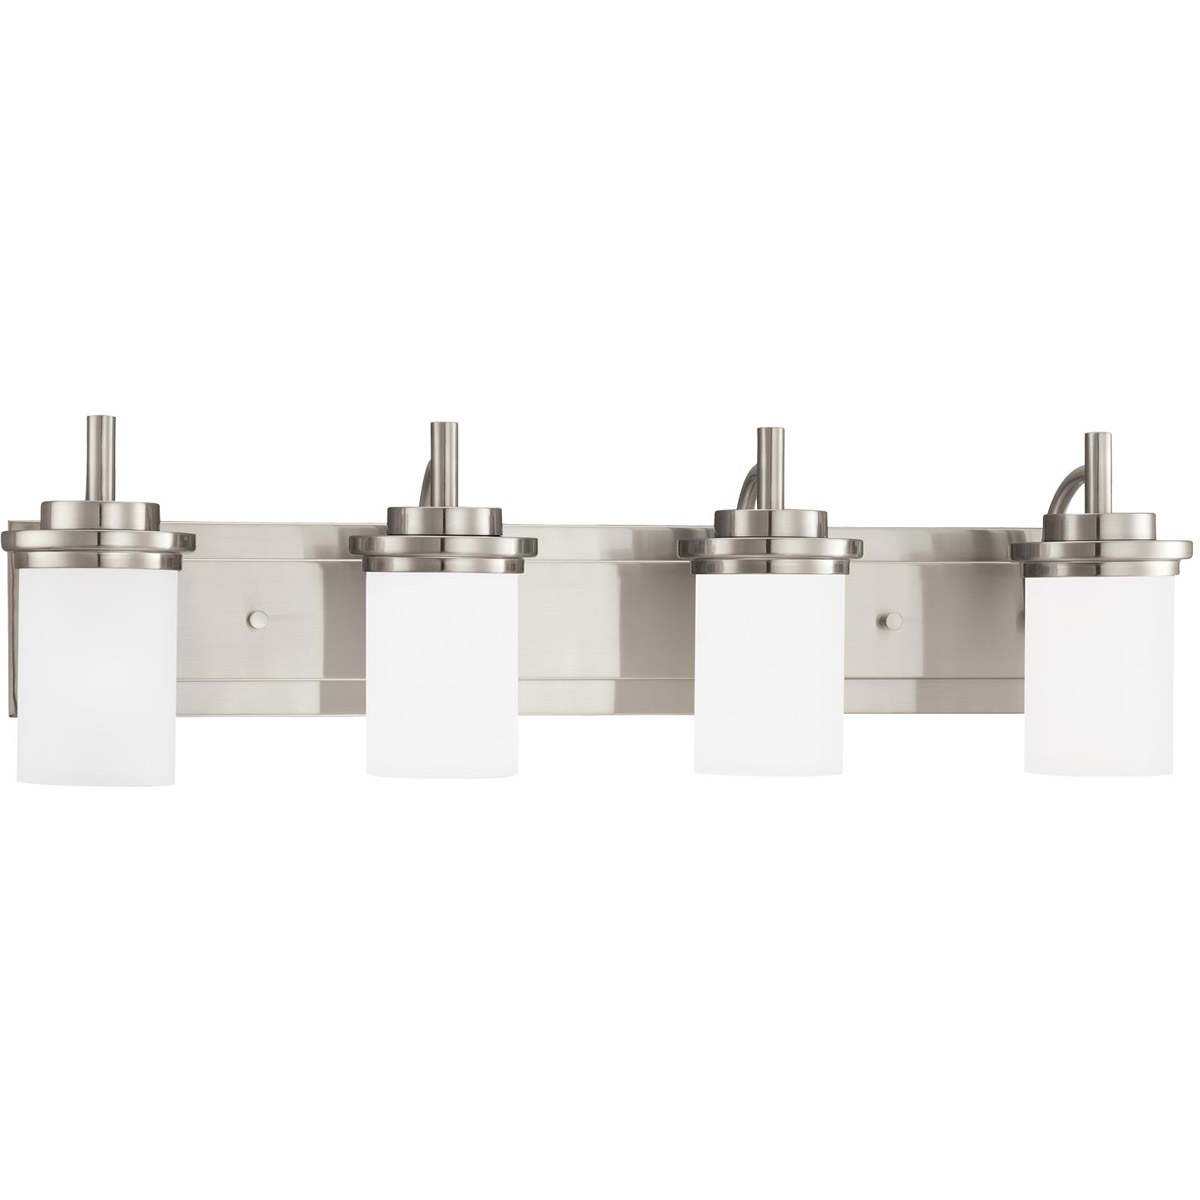 Sea Gull 44663BLE-962 Winnetka 4 Light 32 inch Brushed Nickel Bath Vanity Wall Light in Satin Etched Glass, Fluorescent photo